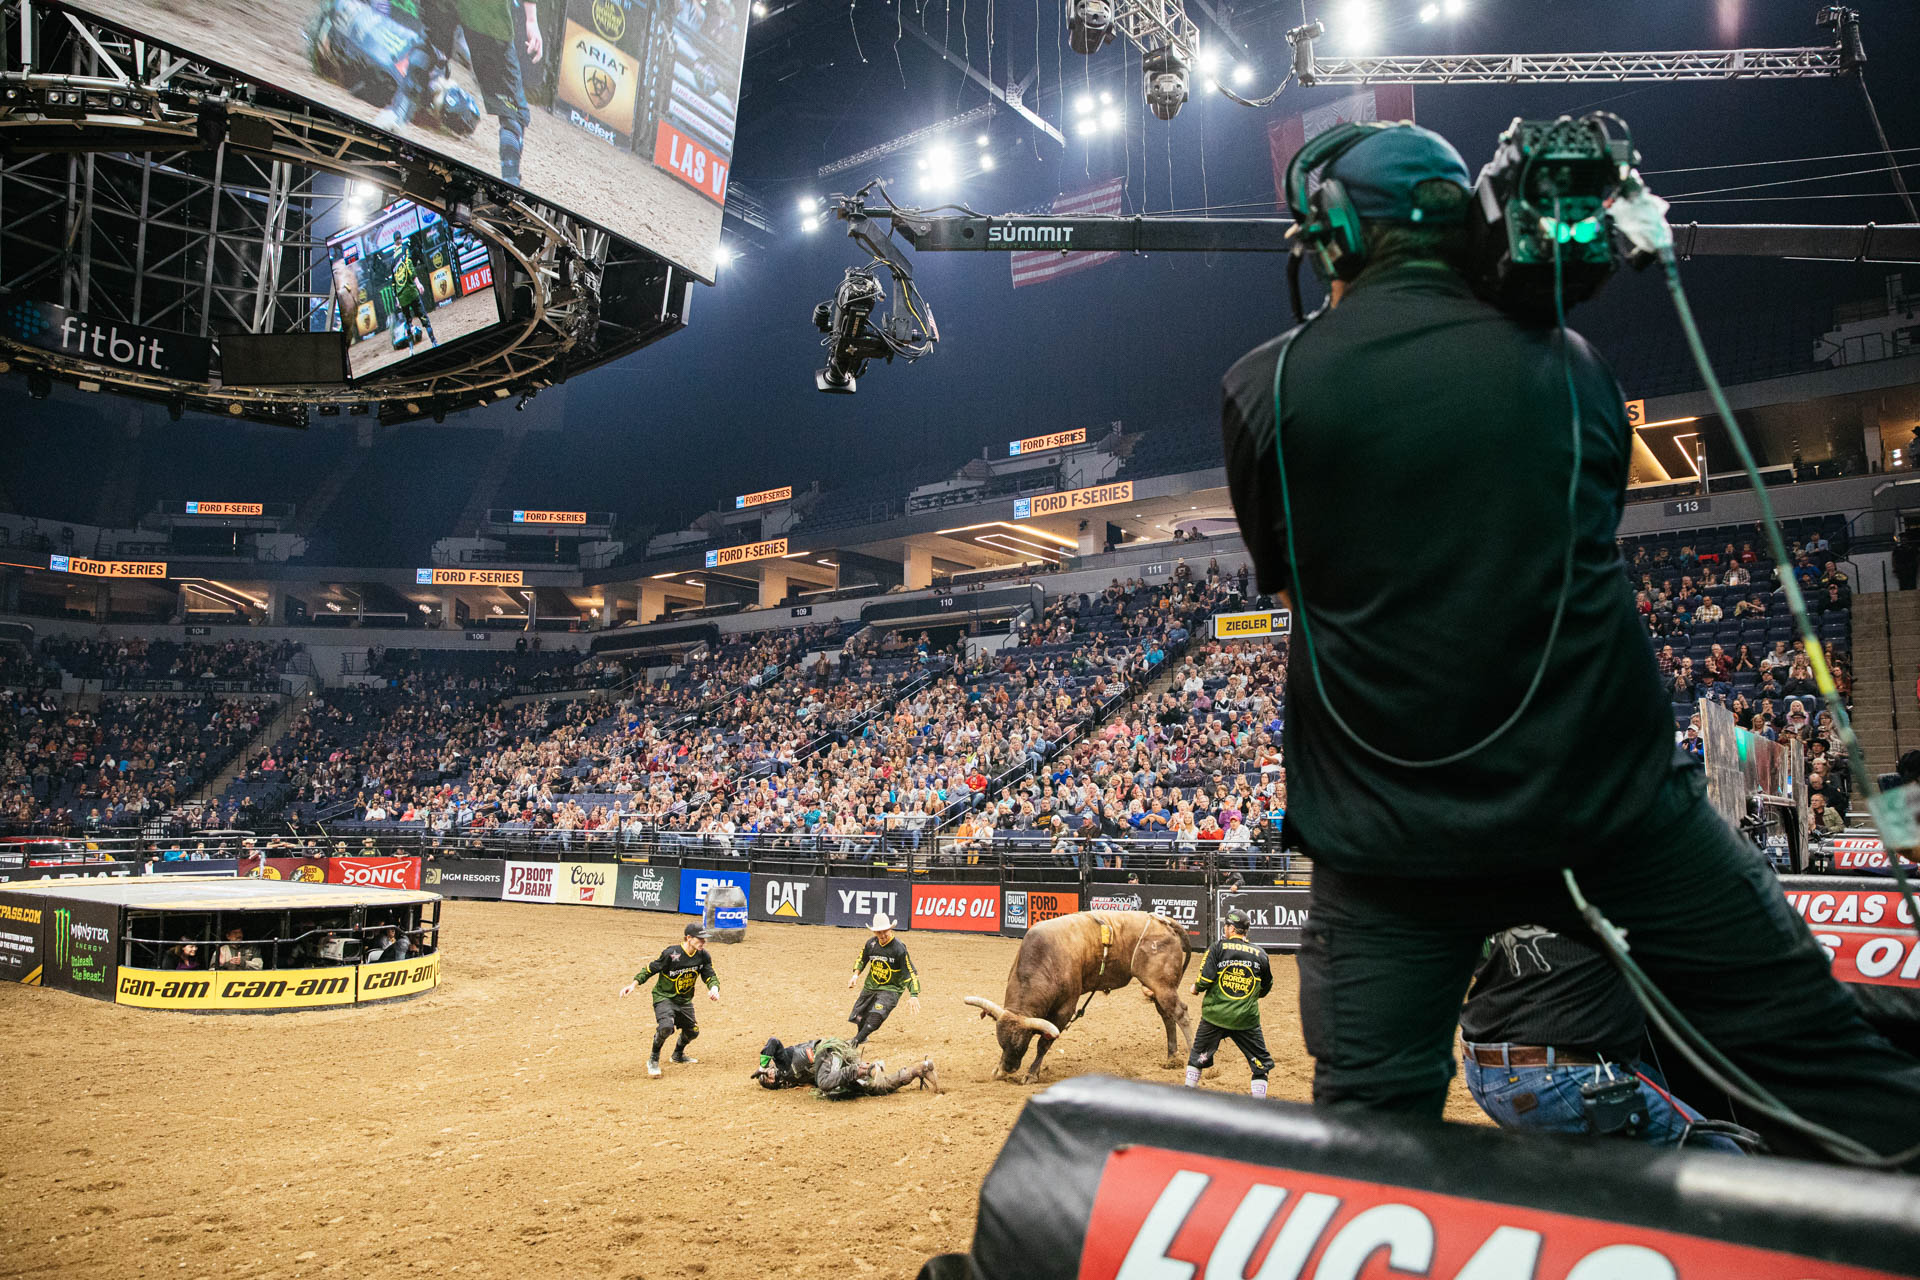 pbr-cbs-camera-crew-bull-riding-target-center.JPG